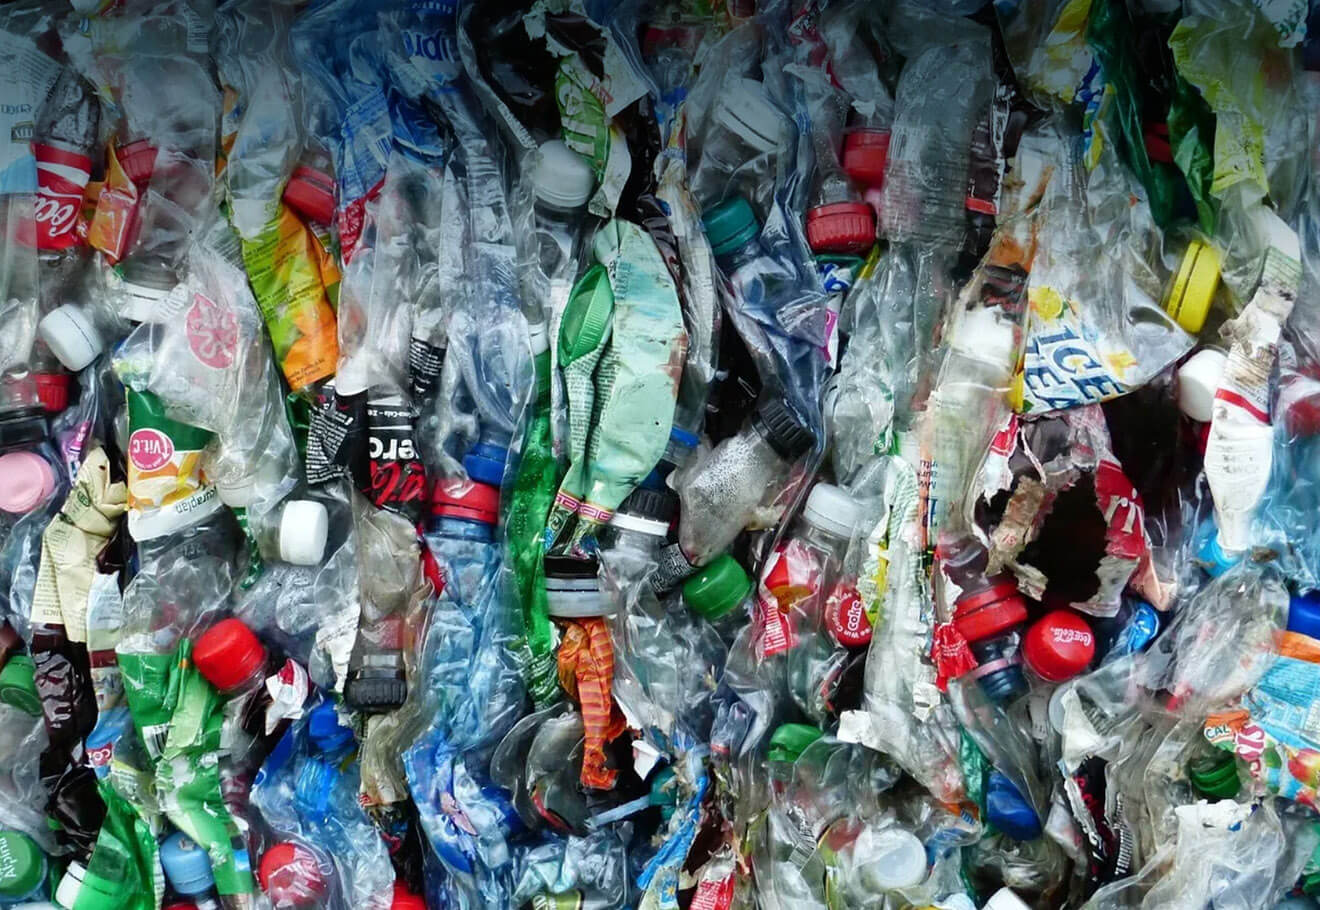 PET Bottles packed together in landfill